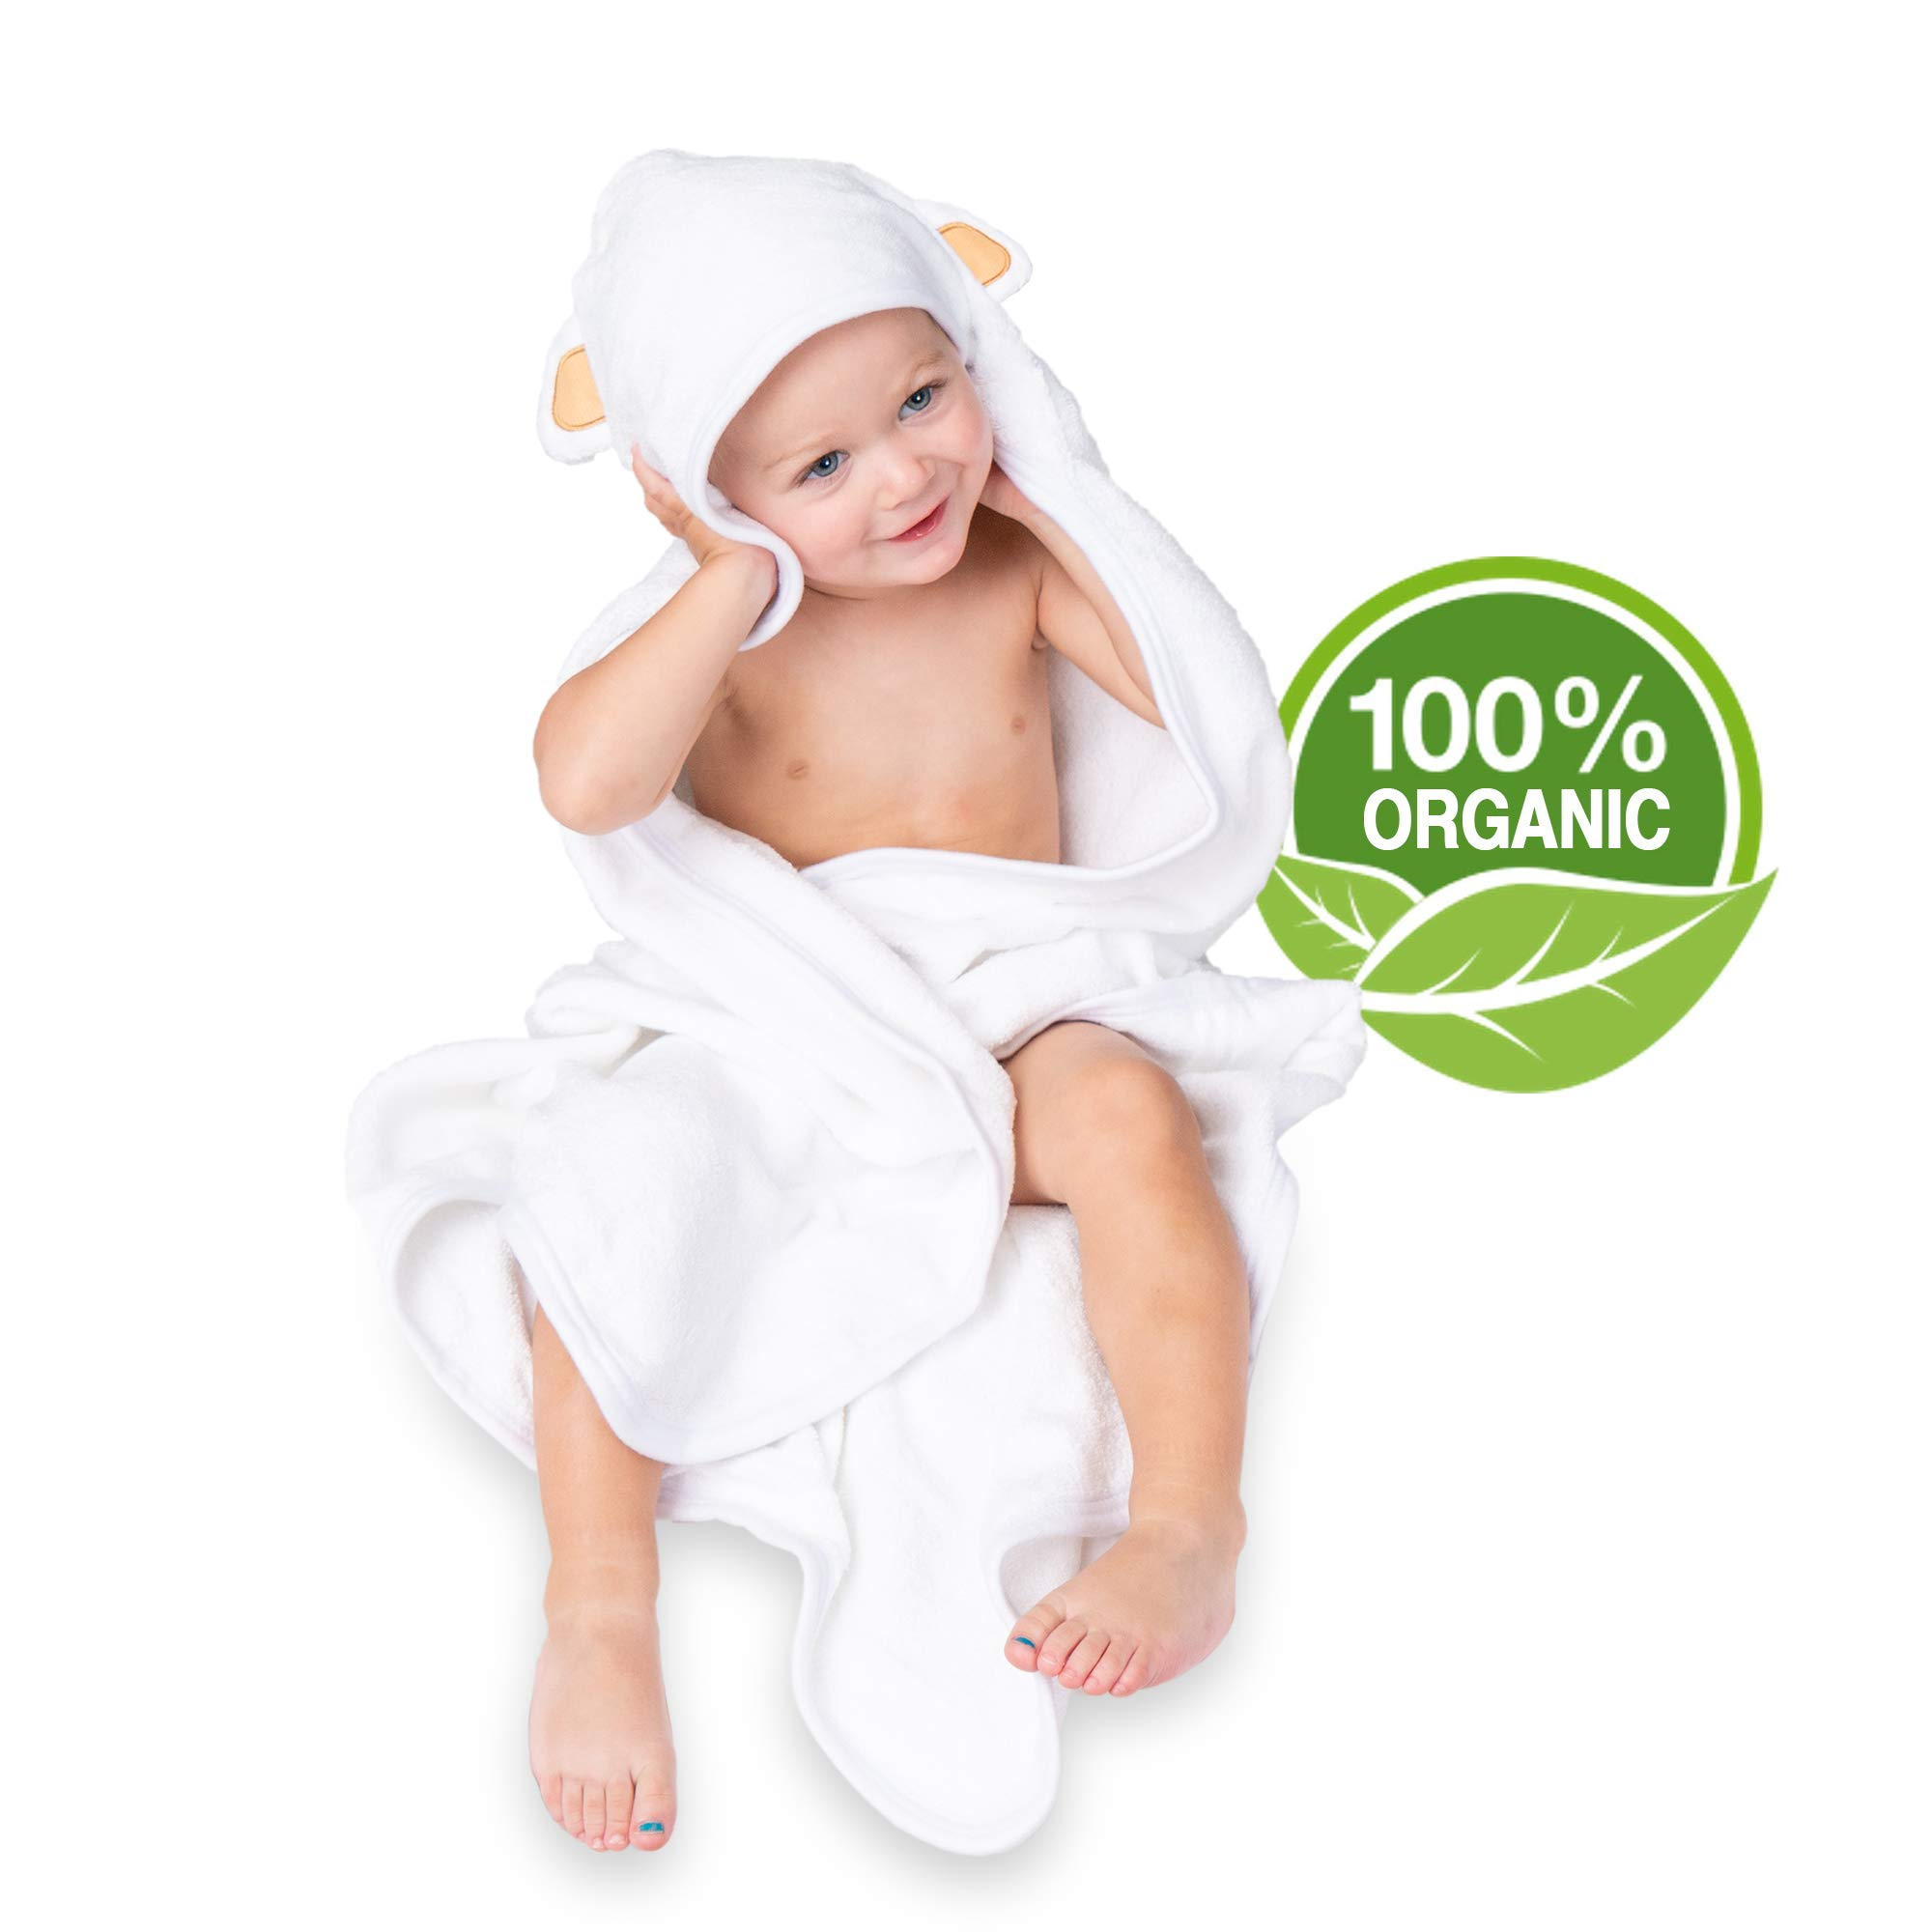 Natural Parent Organic Bamboo Hooded Baby Towel | Premium 600 GSM | Bonus Washcloths Set | Ultra Soft, 2X Thicker, 35''x35'' | Baby Hooded Towel is Perfect as a Baby Shower Gift for Boy or Girl by Natural Parent Co.